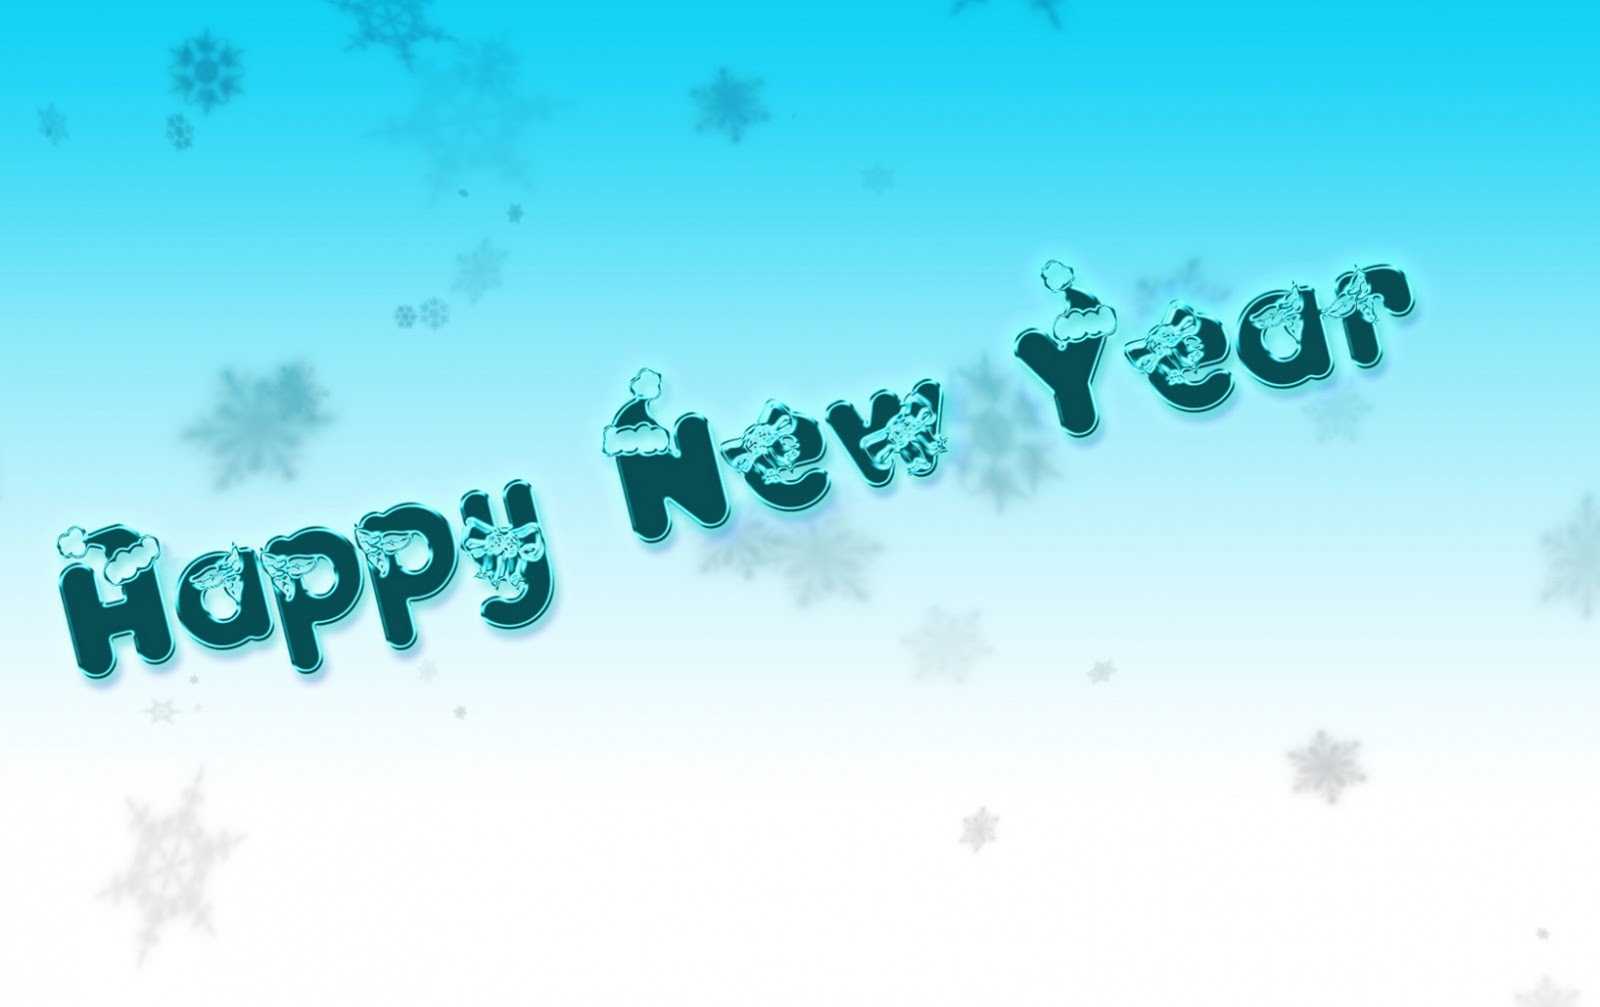 http://3.bp.blogspot.com/-OuGwY_PRQw8/UMeMZ4VLCxI/AAAAAAAAAvg/mYH_VLqtstc/s1600/Happy+New+Year+HD+Wallpaper+Collection+%25283%2529.jpg